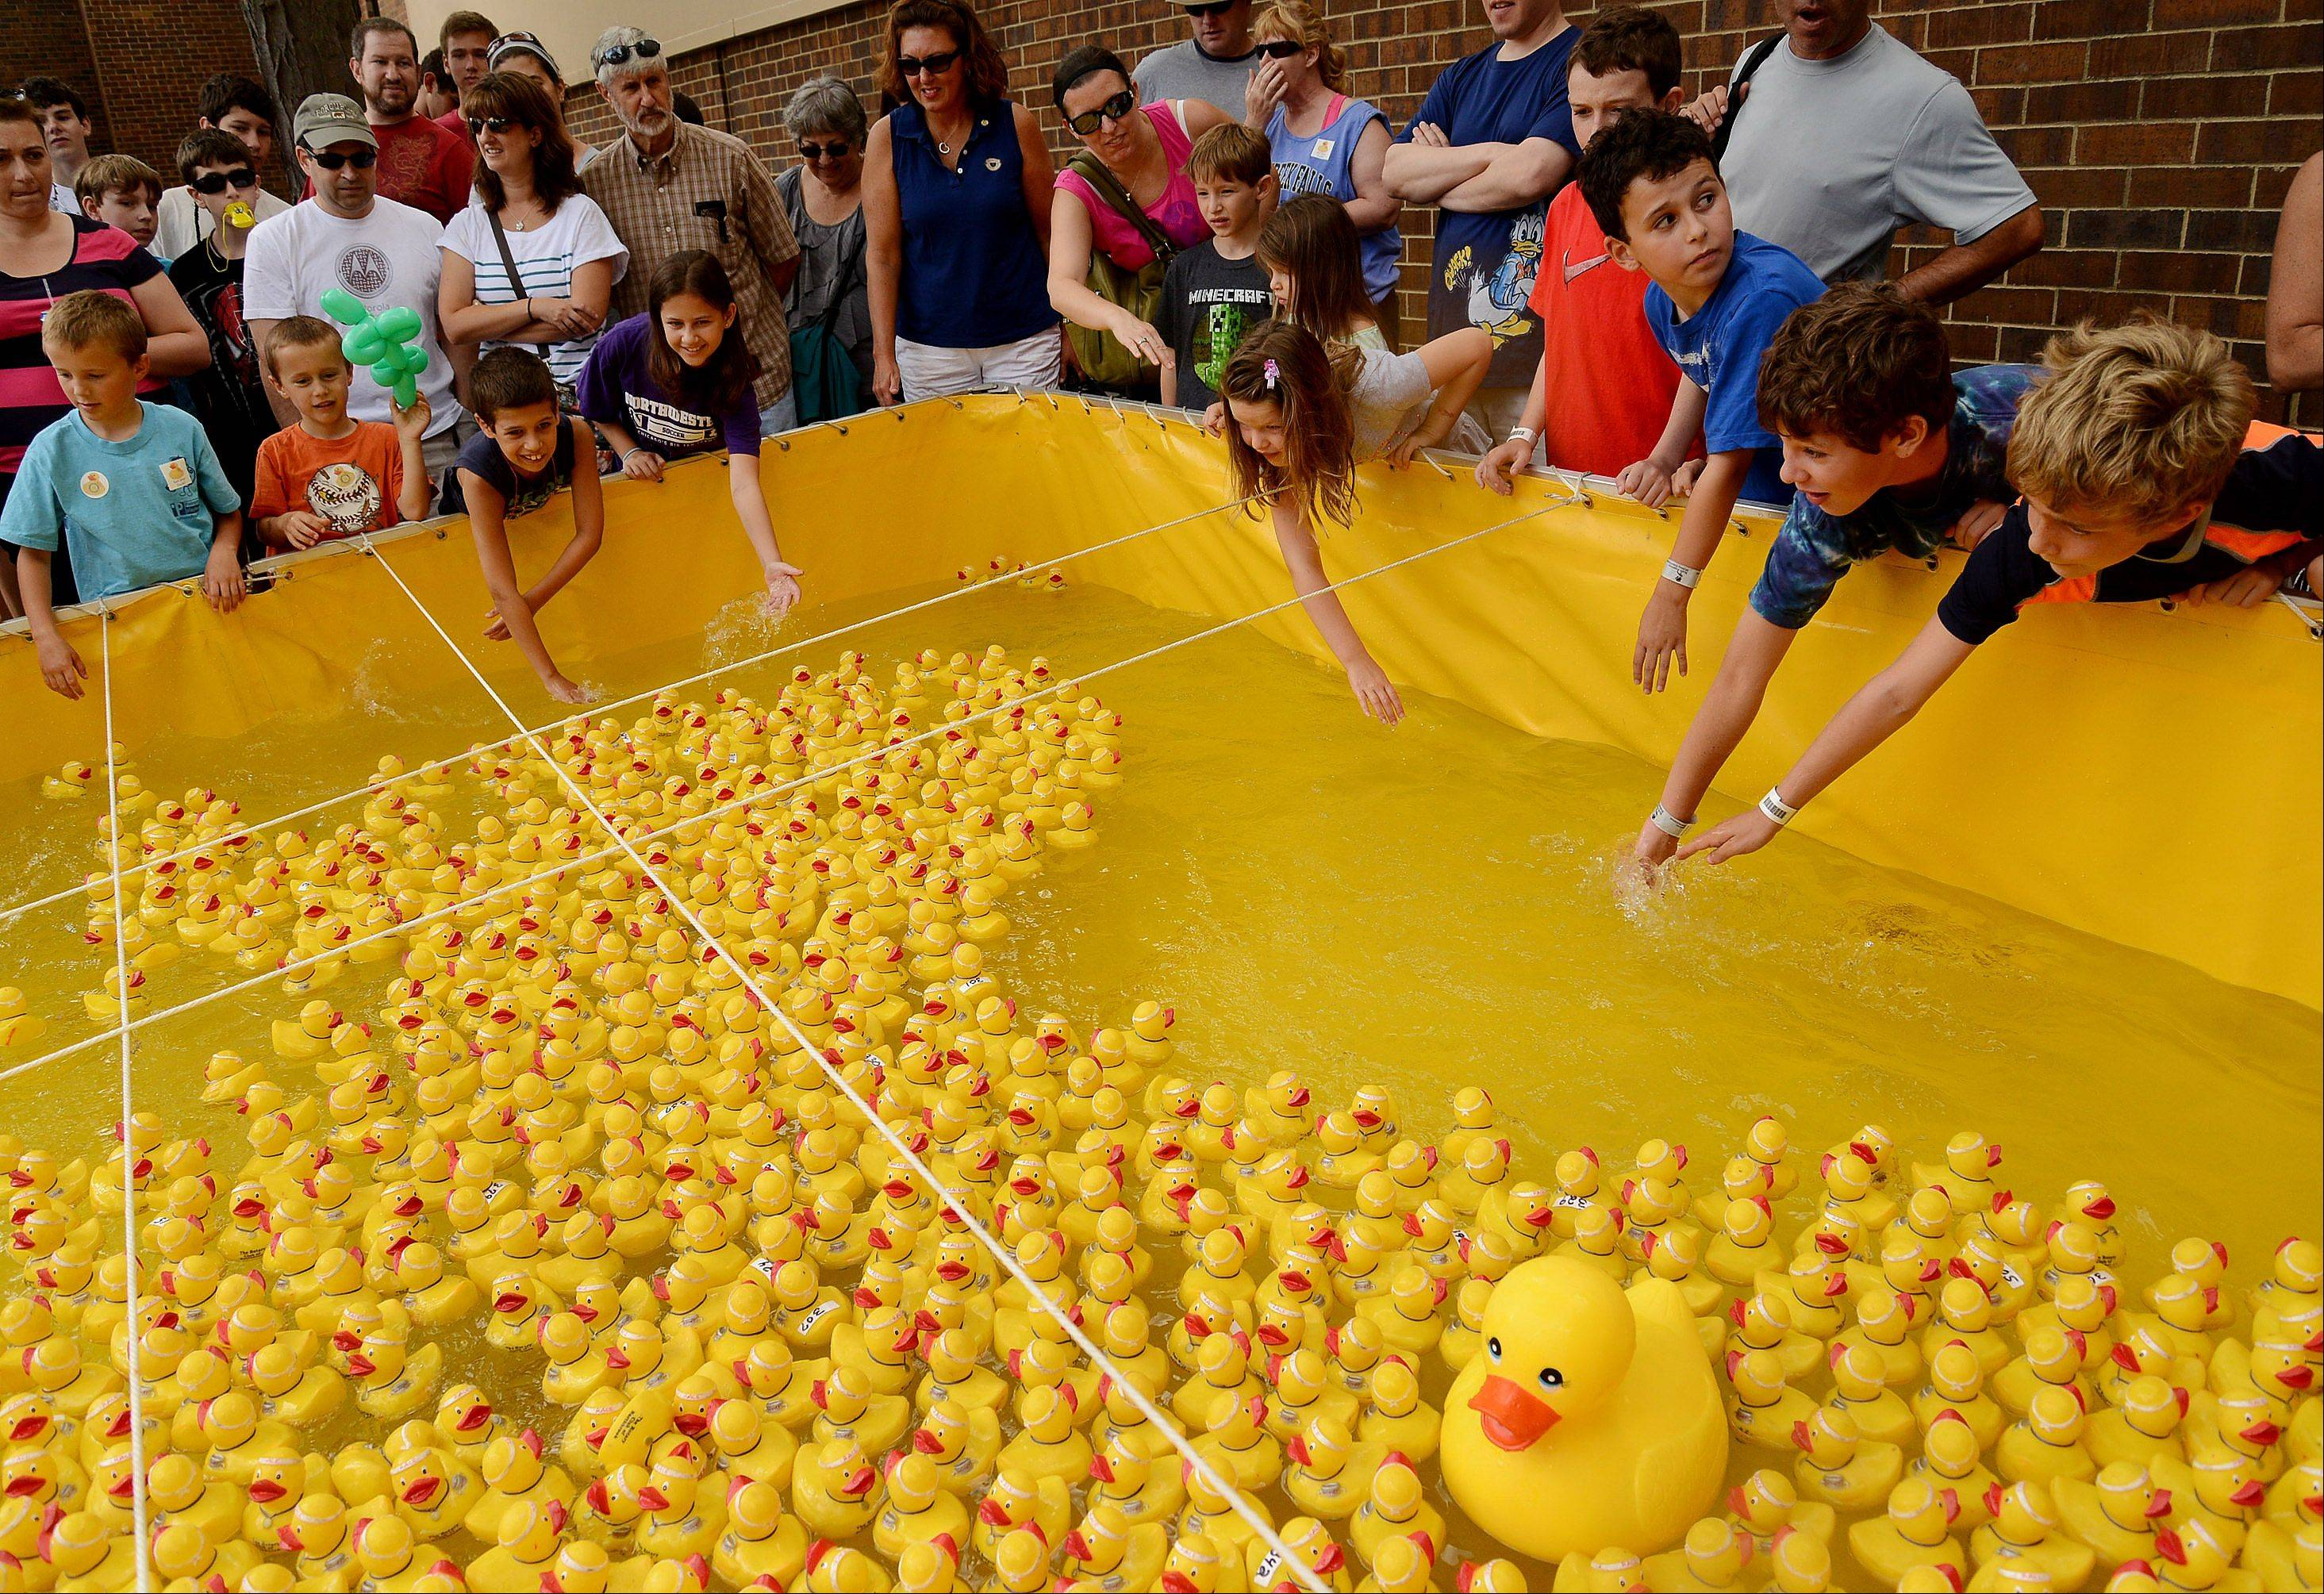 The Rotary Rubber Duck Race is one of the highlights of the fifth and final day of Buffalo Grove Days.